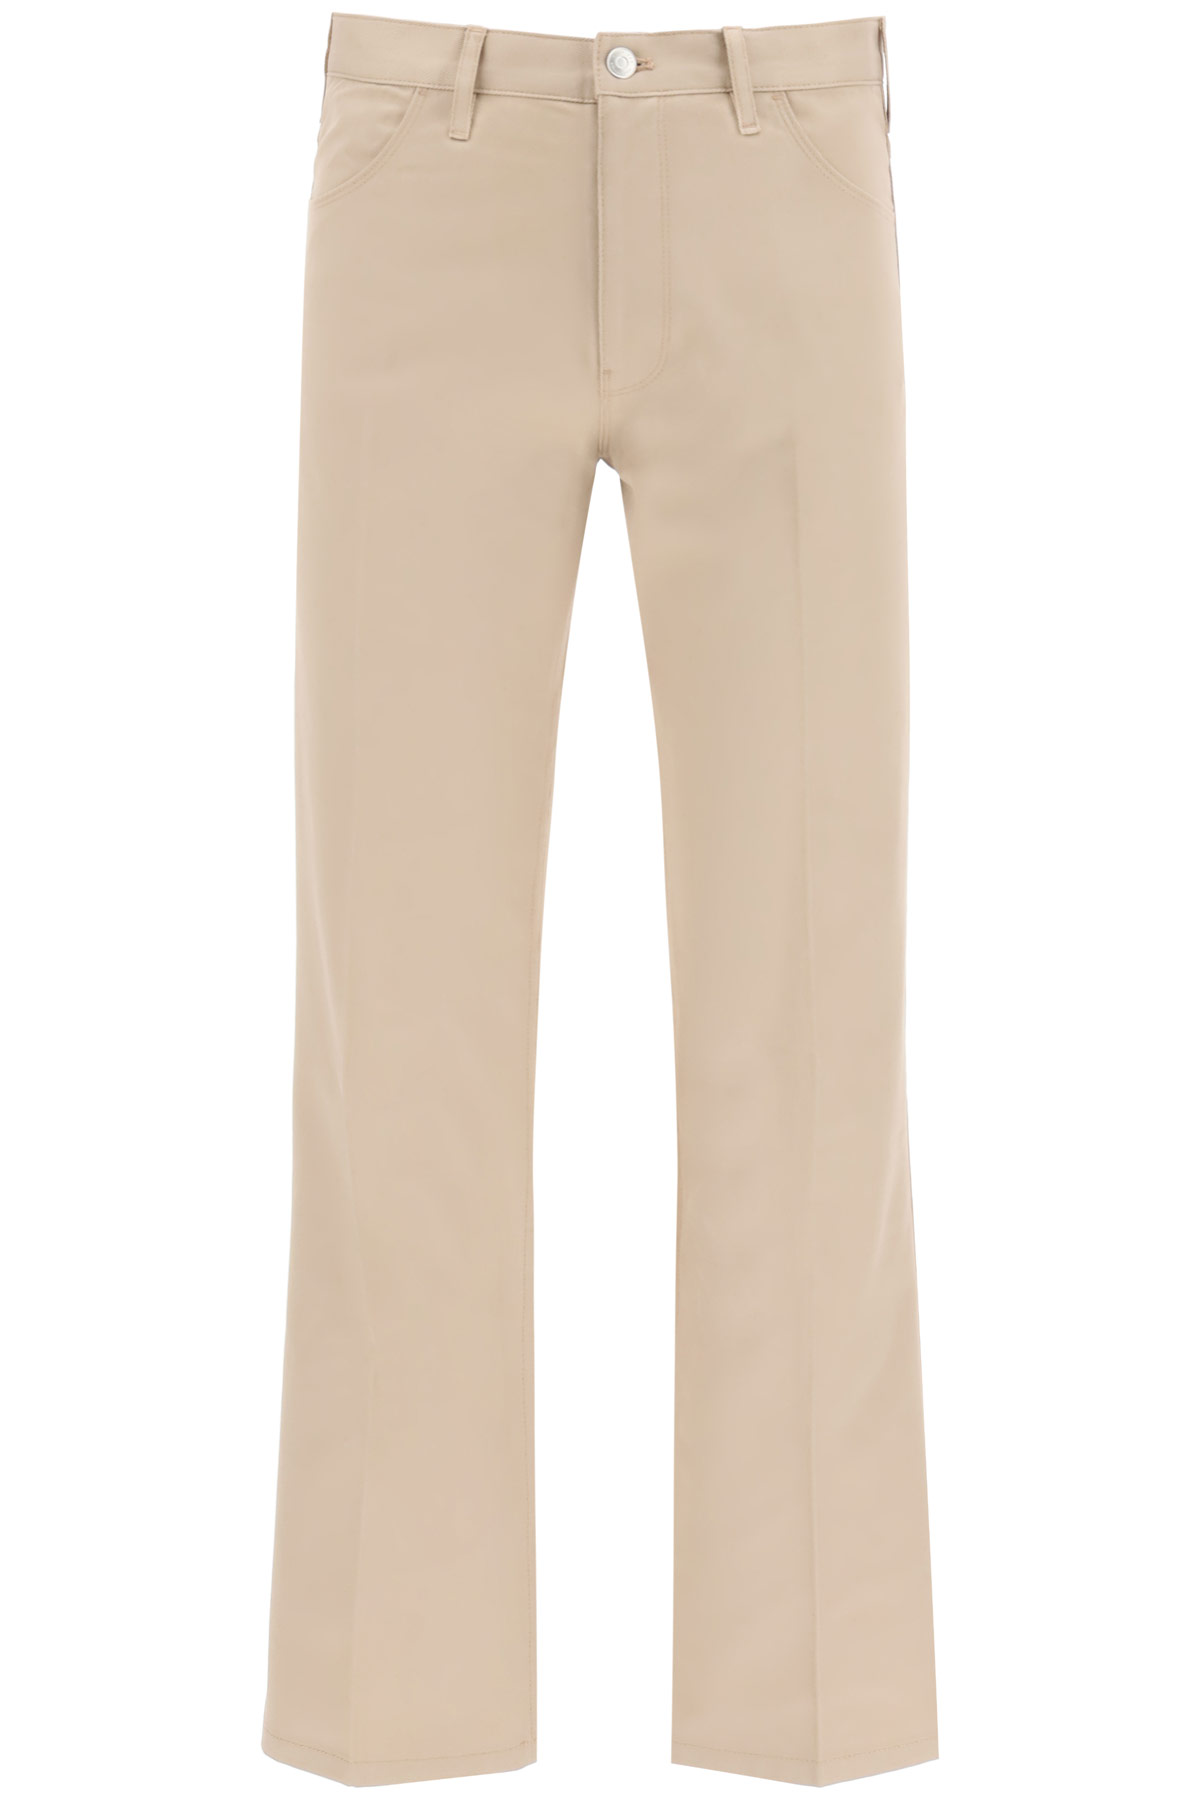 TOMMY HILFIGER COLLECTION TROUSERS WITH EMBROIDERED ARCHIVE EMBROIDERY 30 Beige Cotton